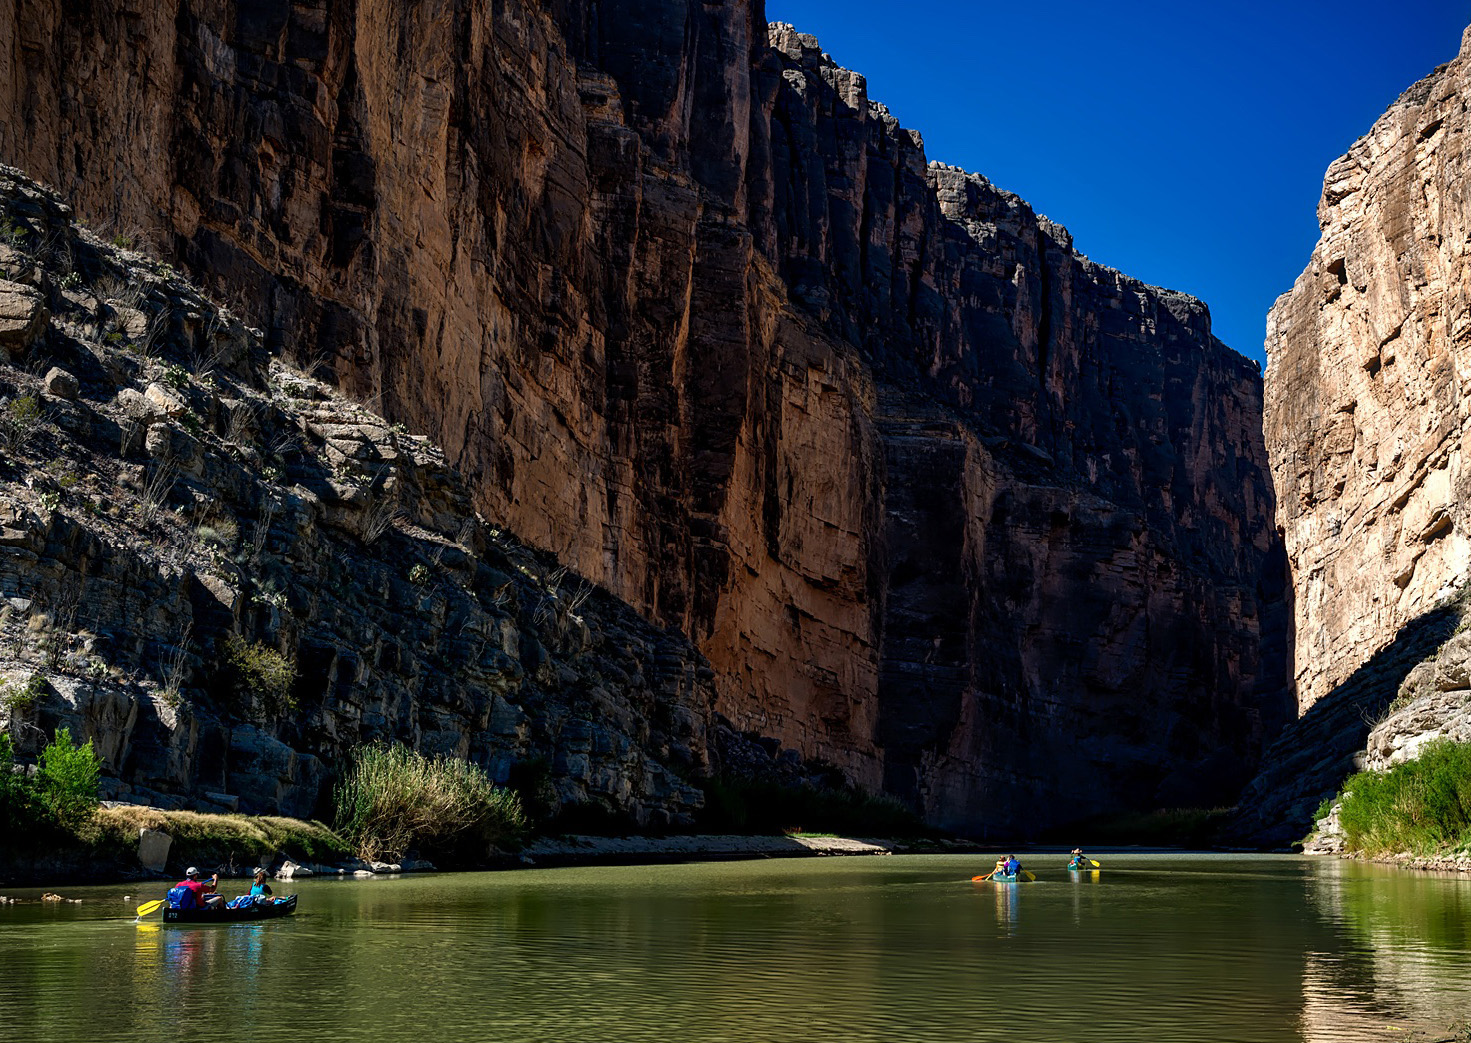 Canoeing in the Rio Grande River under huge cliffs